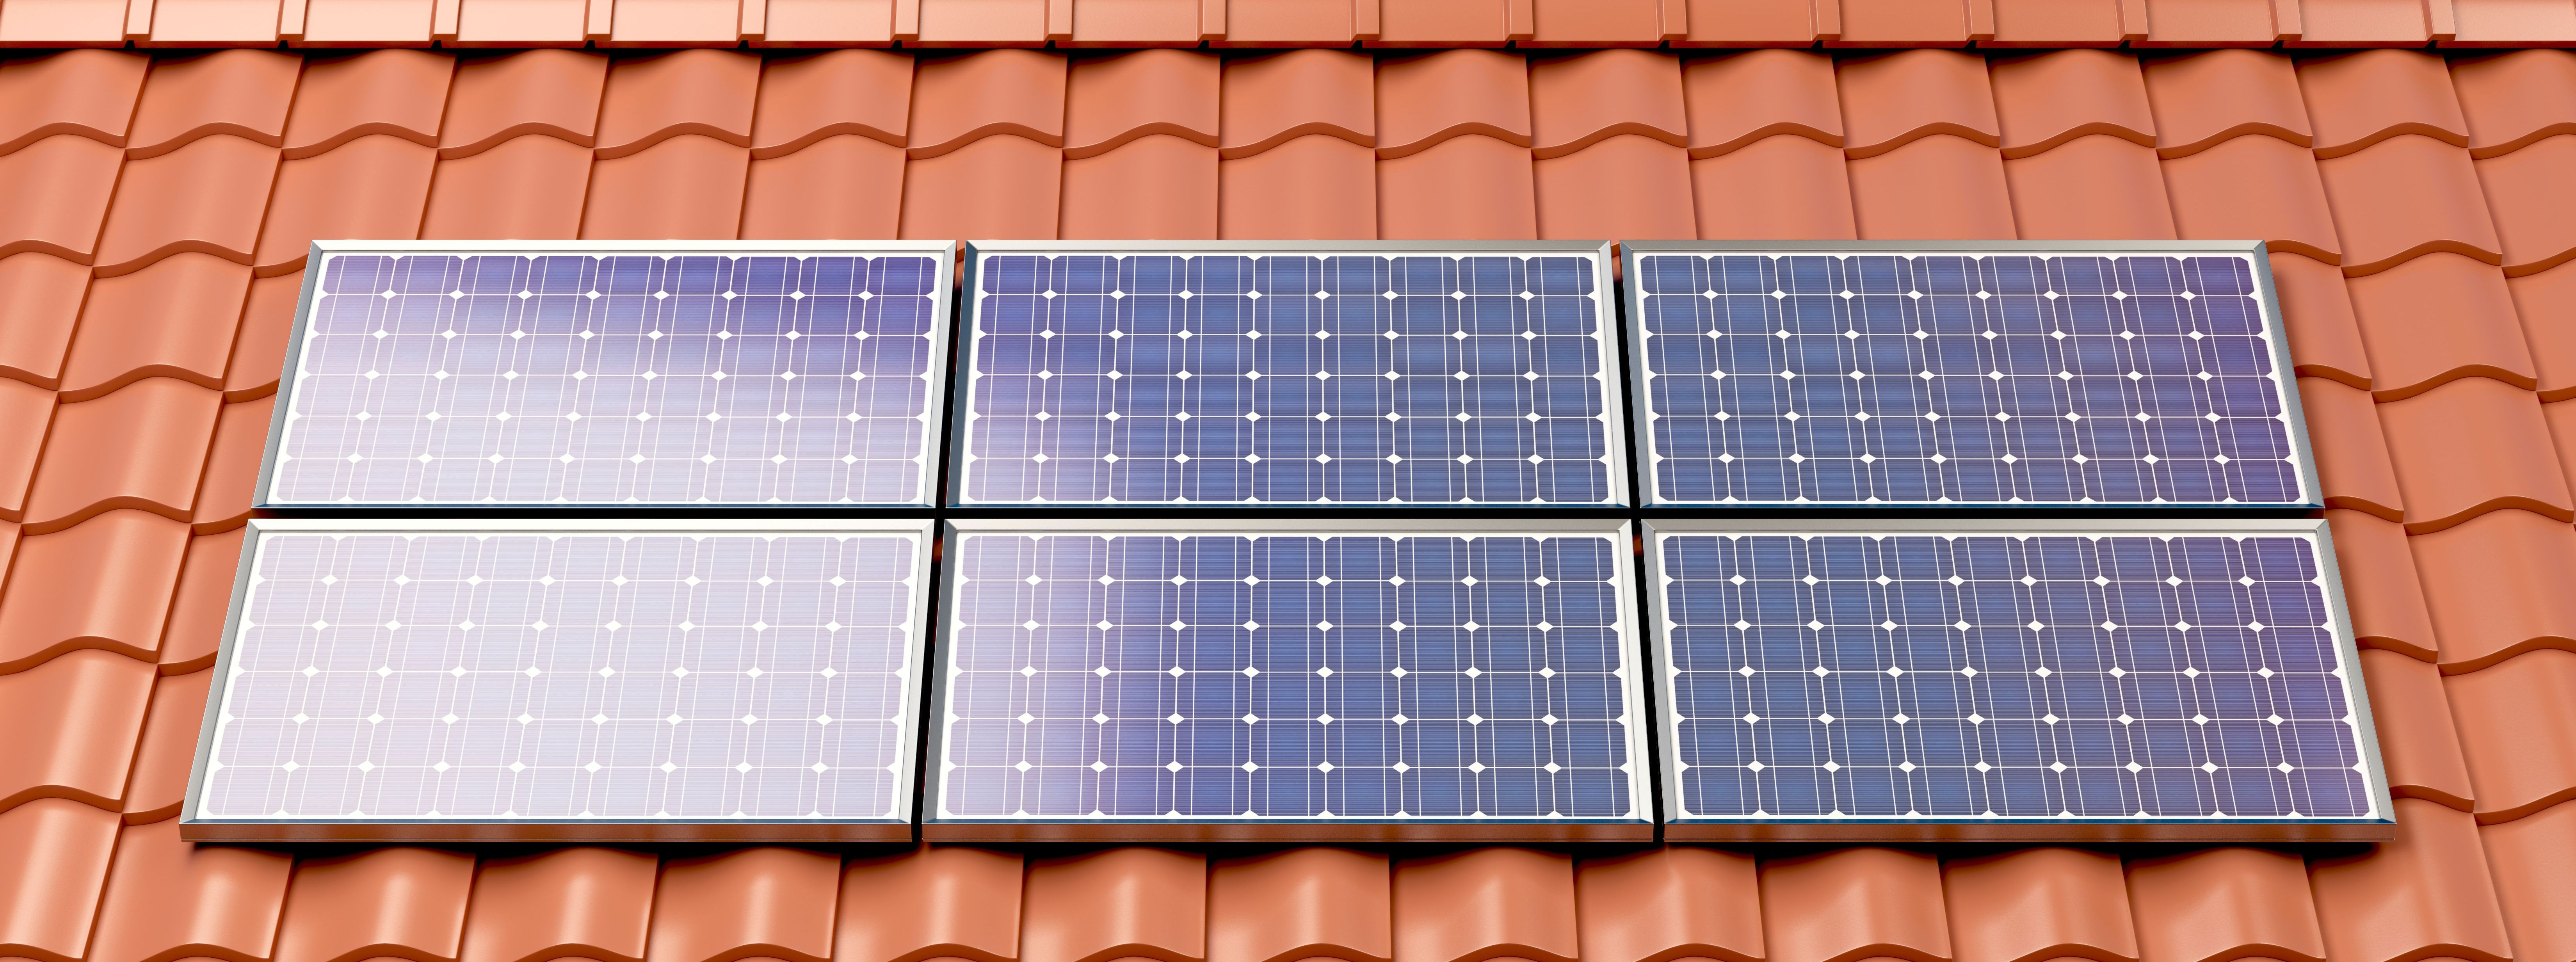 solar-panels-on-the-roof-of-a-house-producing-elec-P6NRS32.jpg